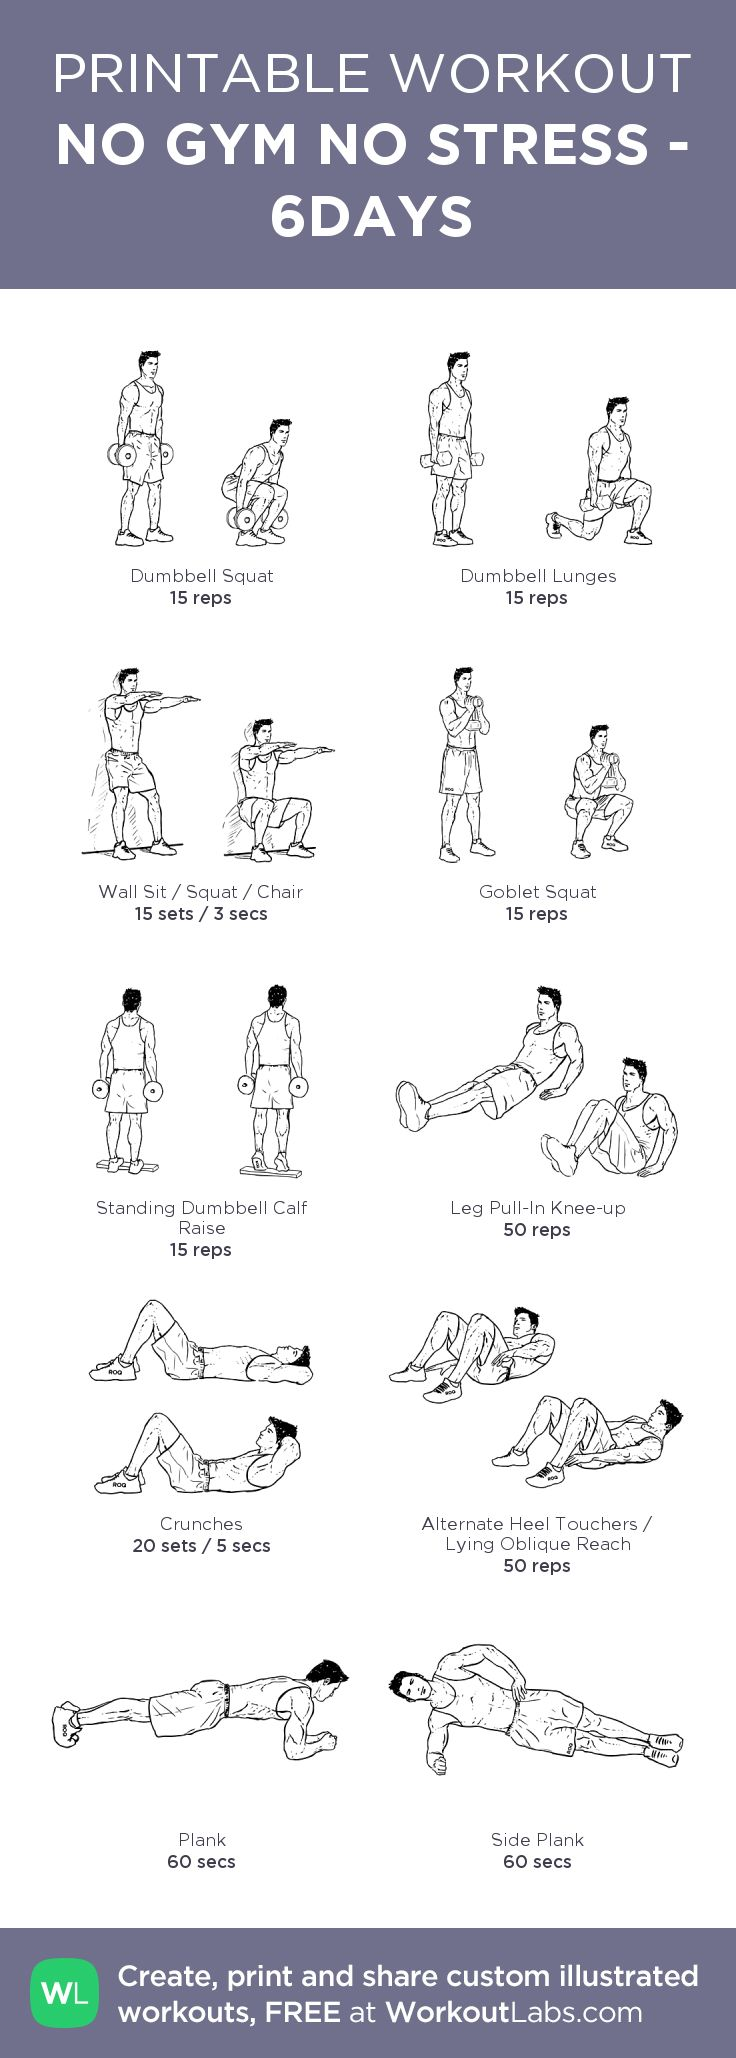 NO GYM NO STRESS : Stretching is the first. Do 3 cycles sequentially and the last is CARDIO 10 minutes.